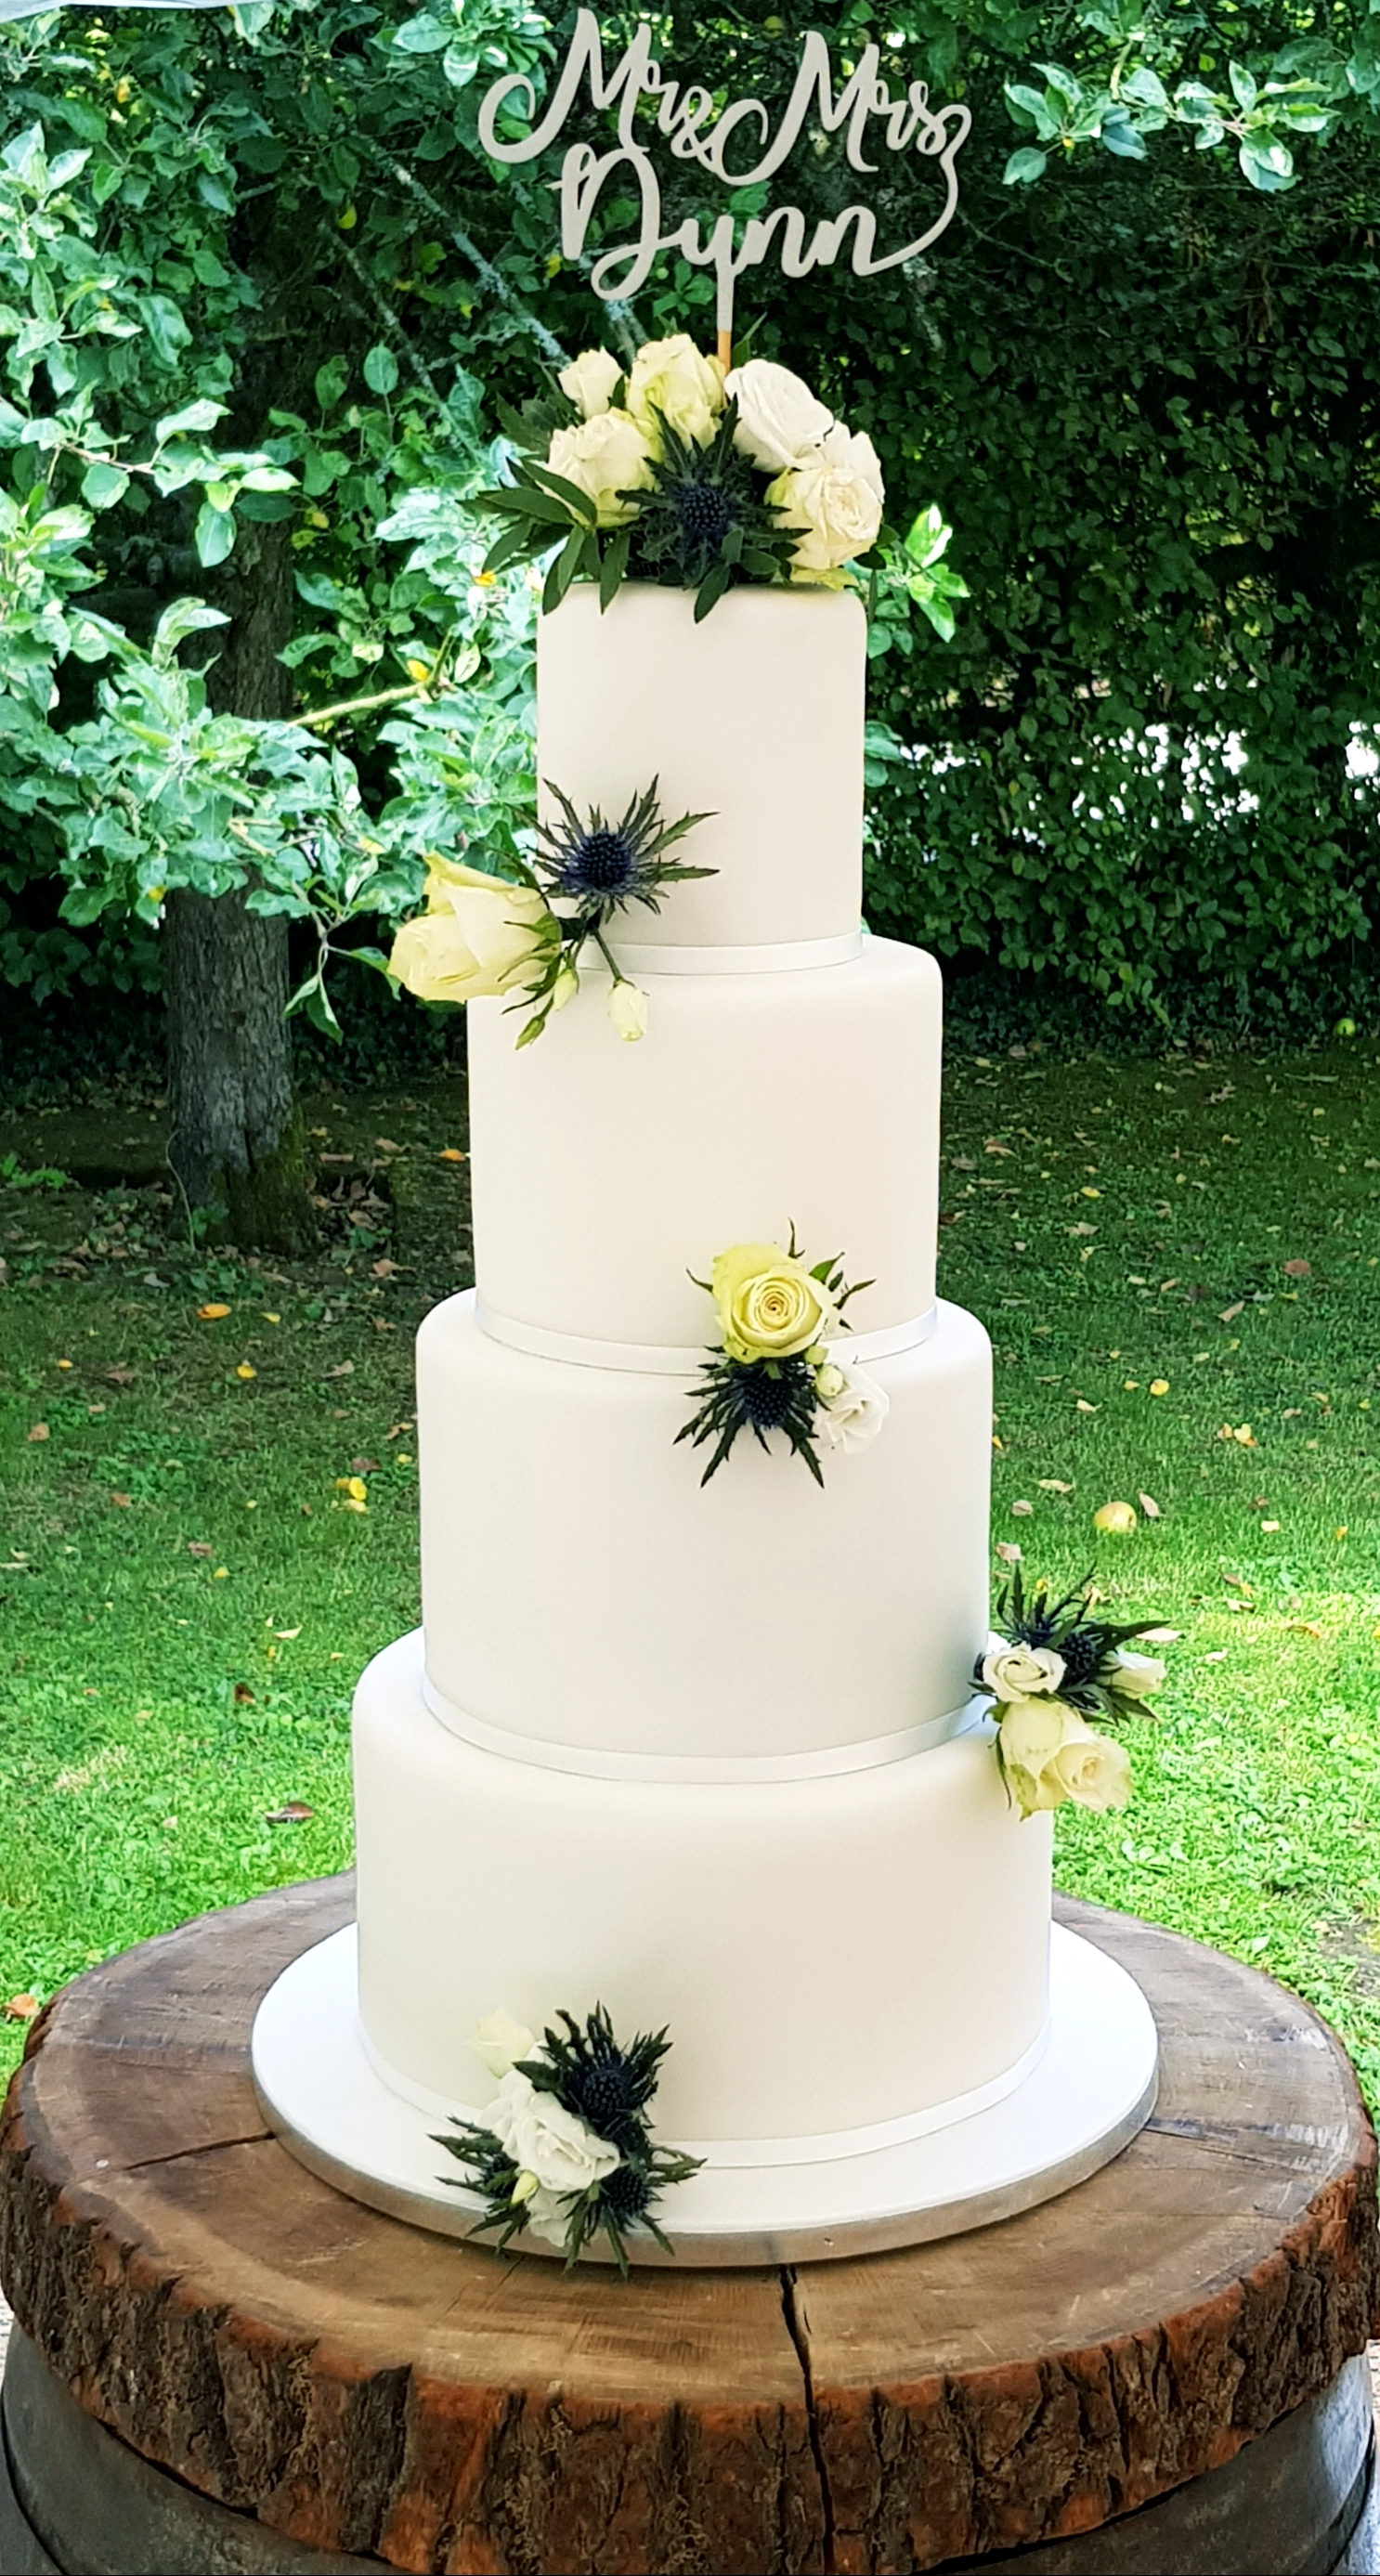 Classic 4 tier wedding cake with white icing and decorated with white roses and green foliage